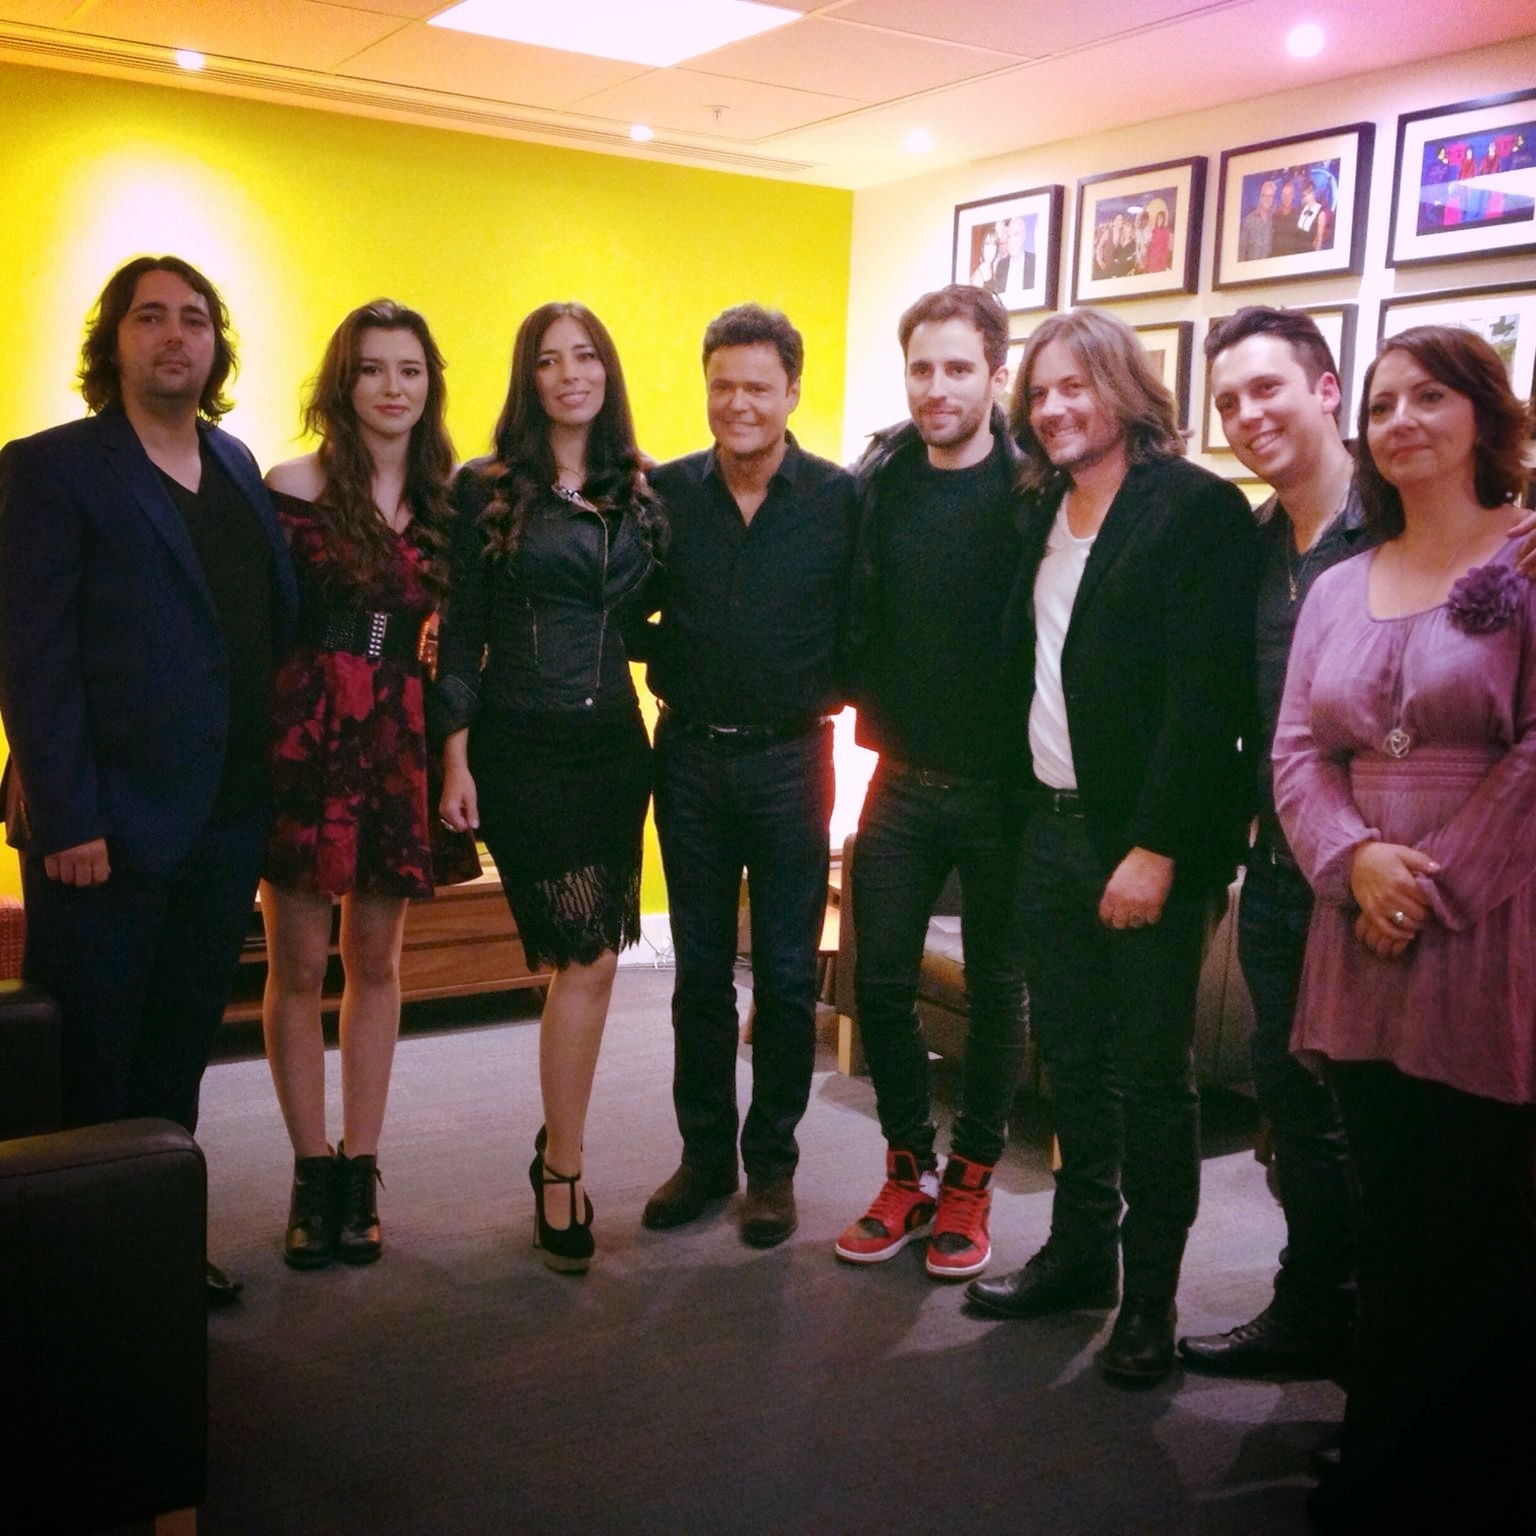 "Donny Osmond.    ""Fantastic job you guys!""      ""It's been a pleasure to sing with you Georgia. We'll have to do it again some other time!""    After we sang for Donny live on the One Show, he invited my family and us back to the Green Room and Donny and I sang a duet together. It was quite surreal not just because he's the one and only Donny Osmond but because his voice was just so beautiful and tender."